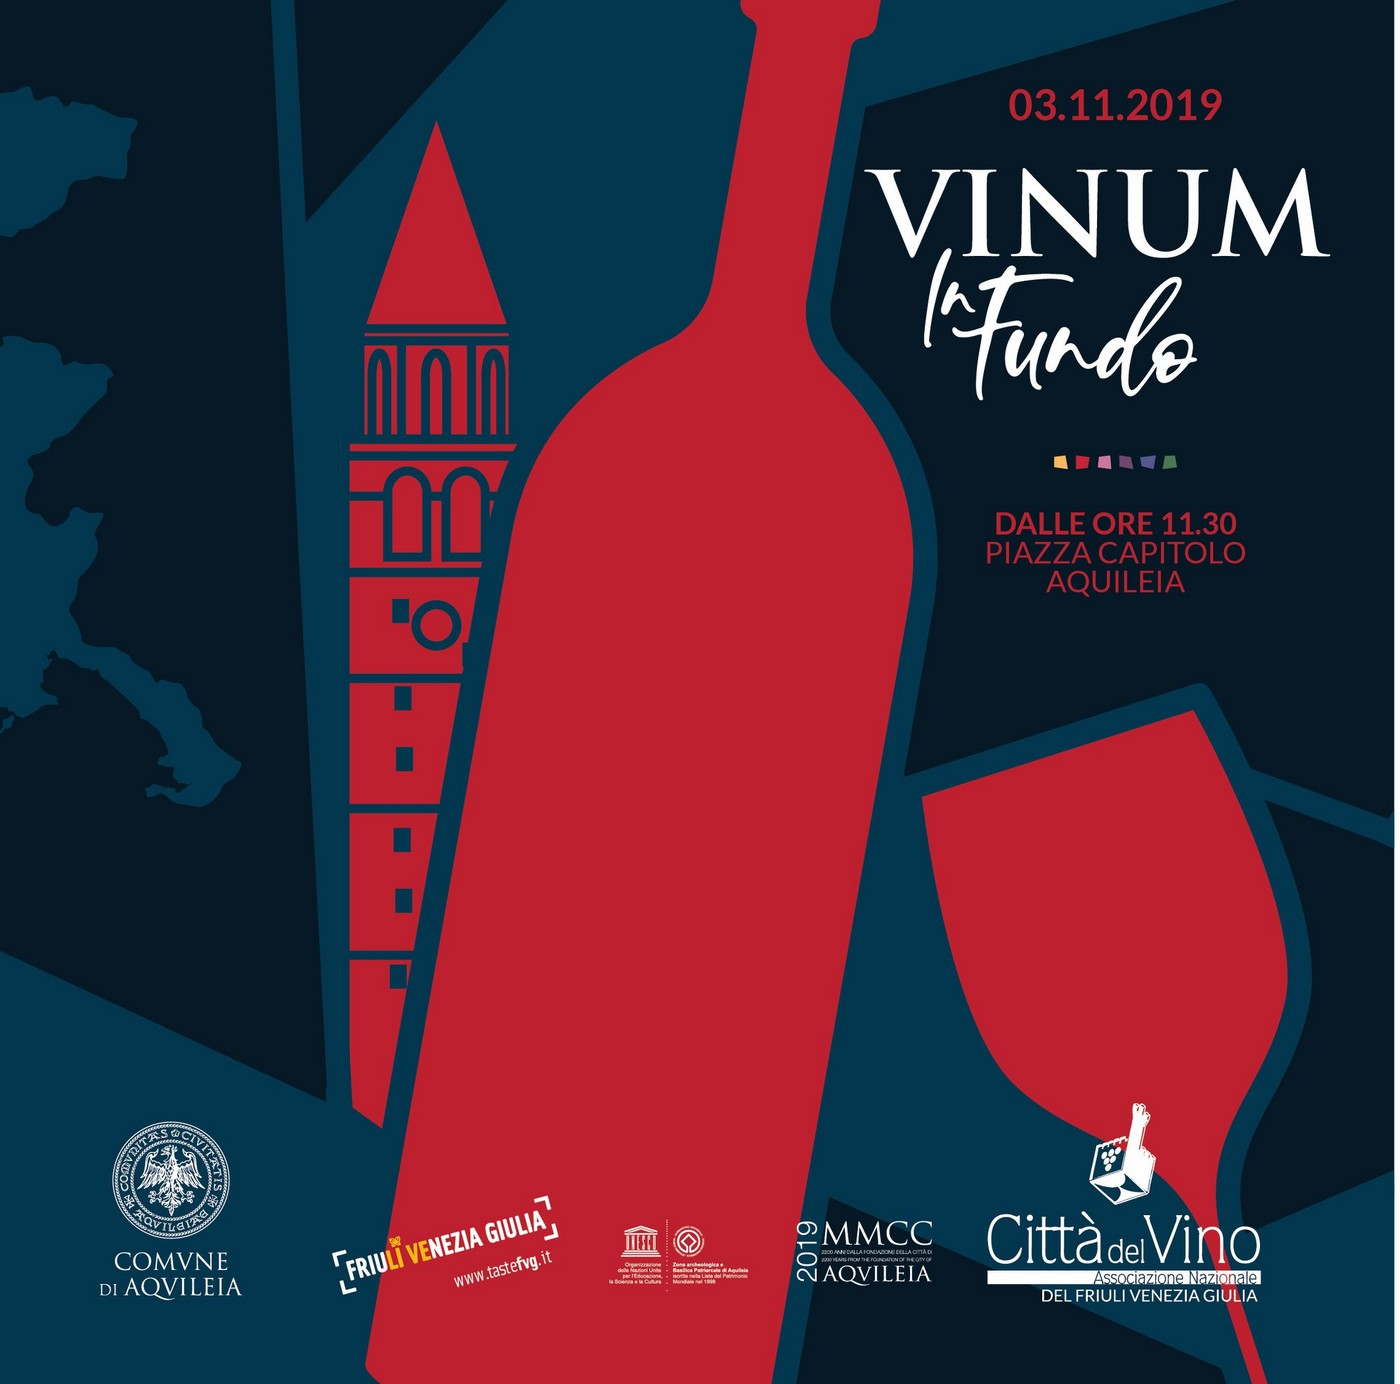 Vinum in fundo logo